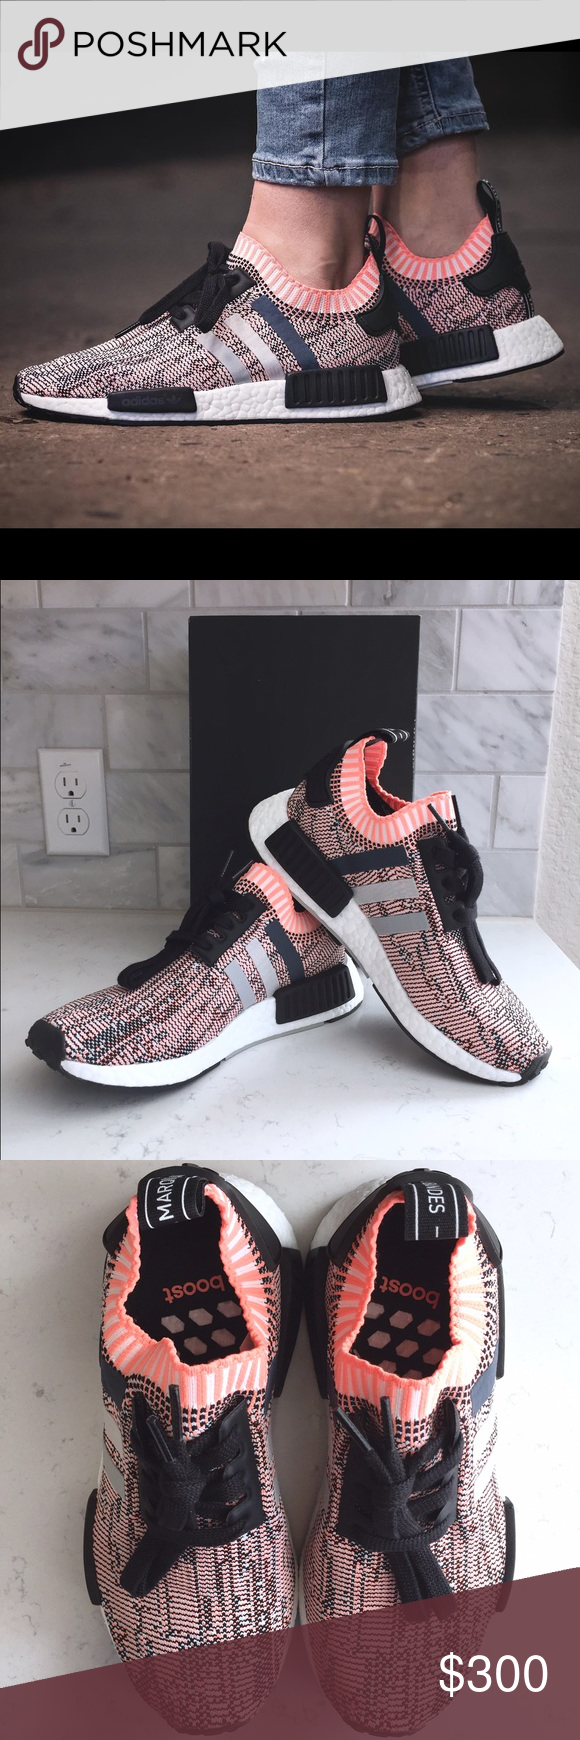 099e3e351 Adidas NMD R1 Primeknit BB2361 Sun Glow Salmon 6 Limited release  deadstock--this is